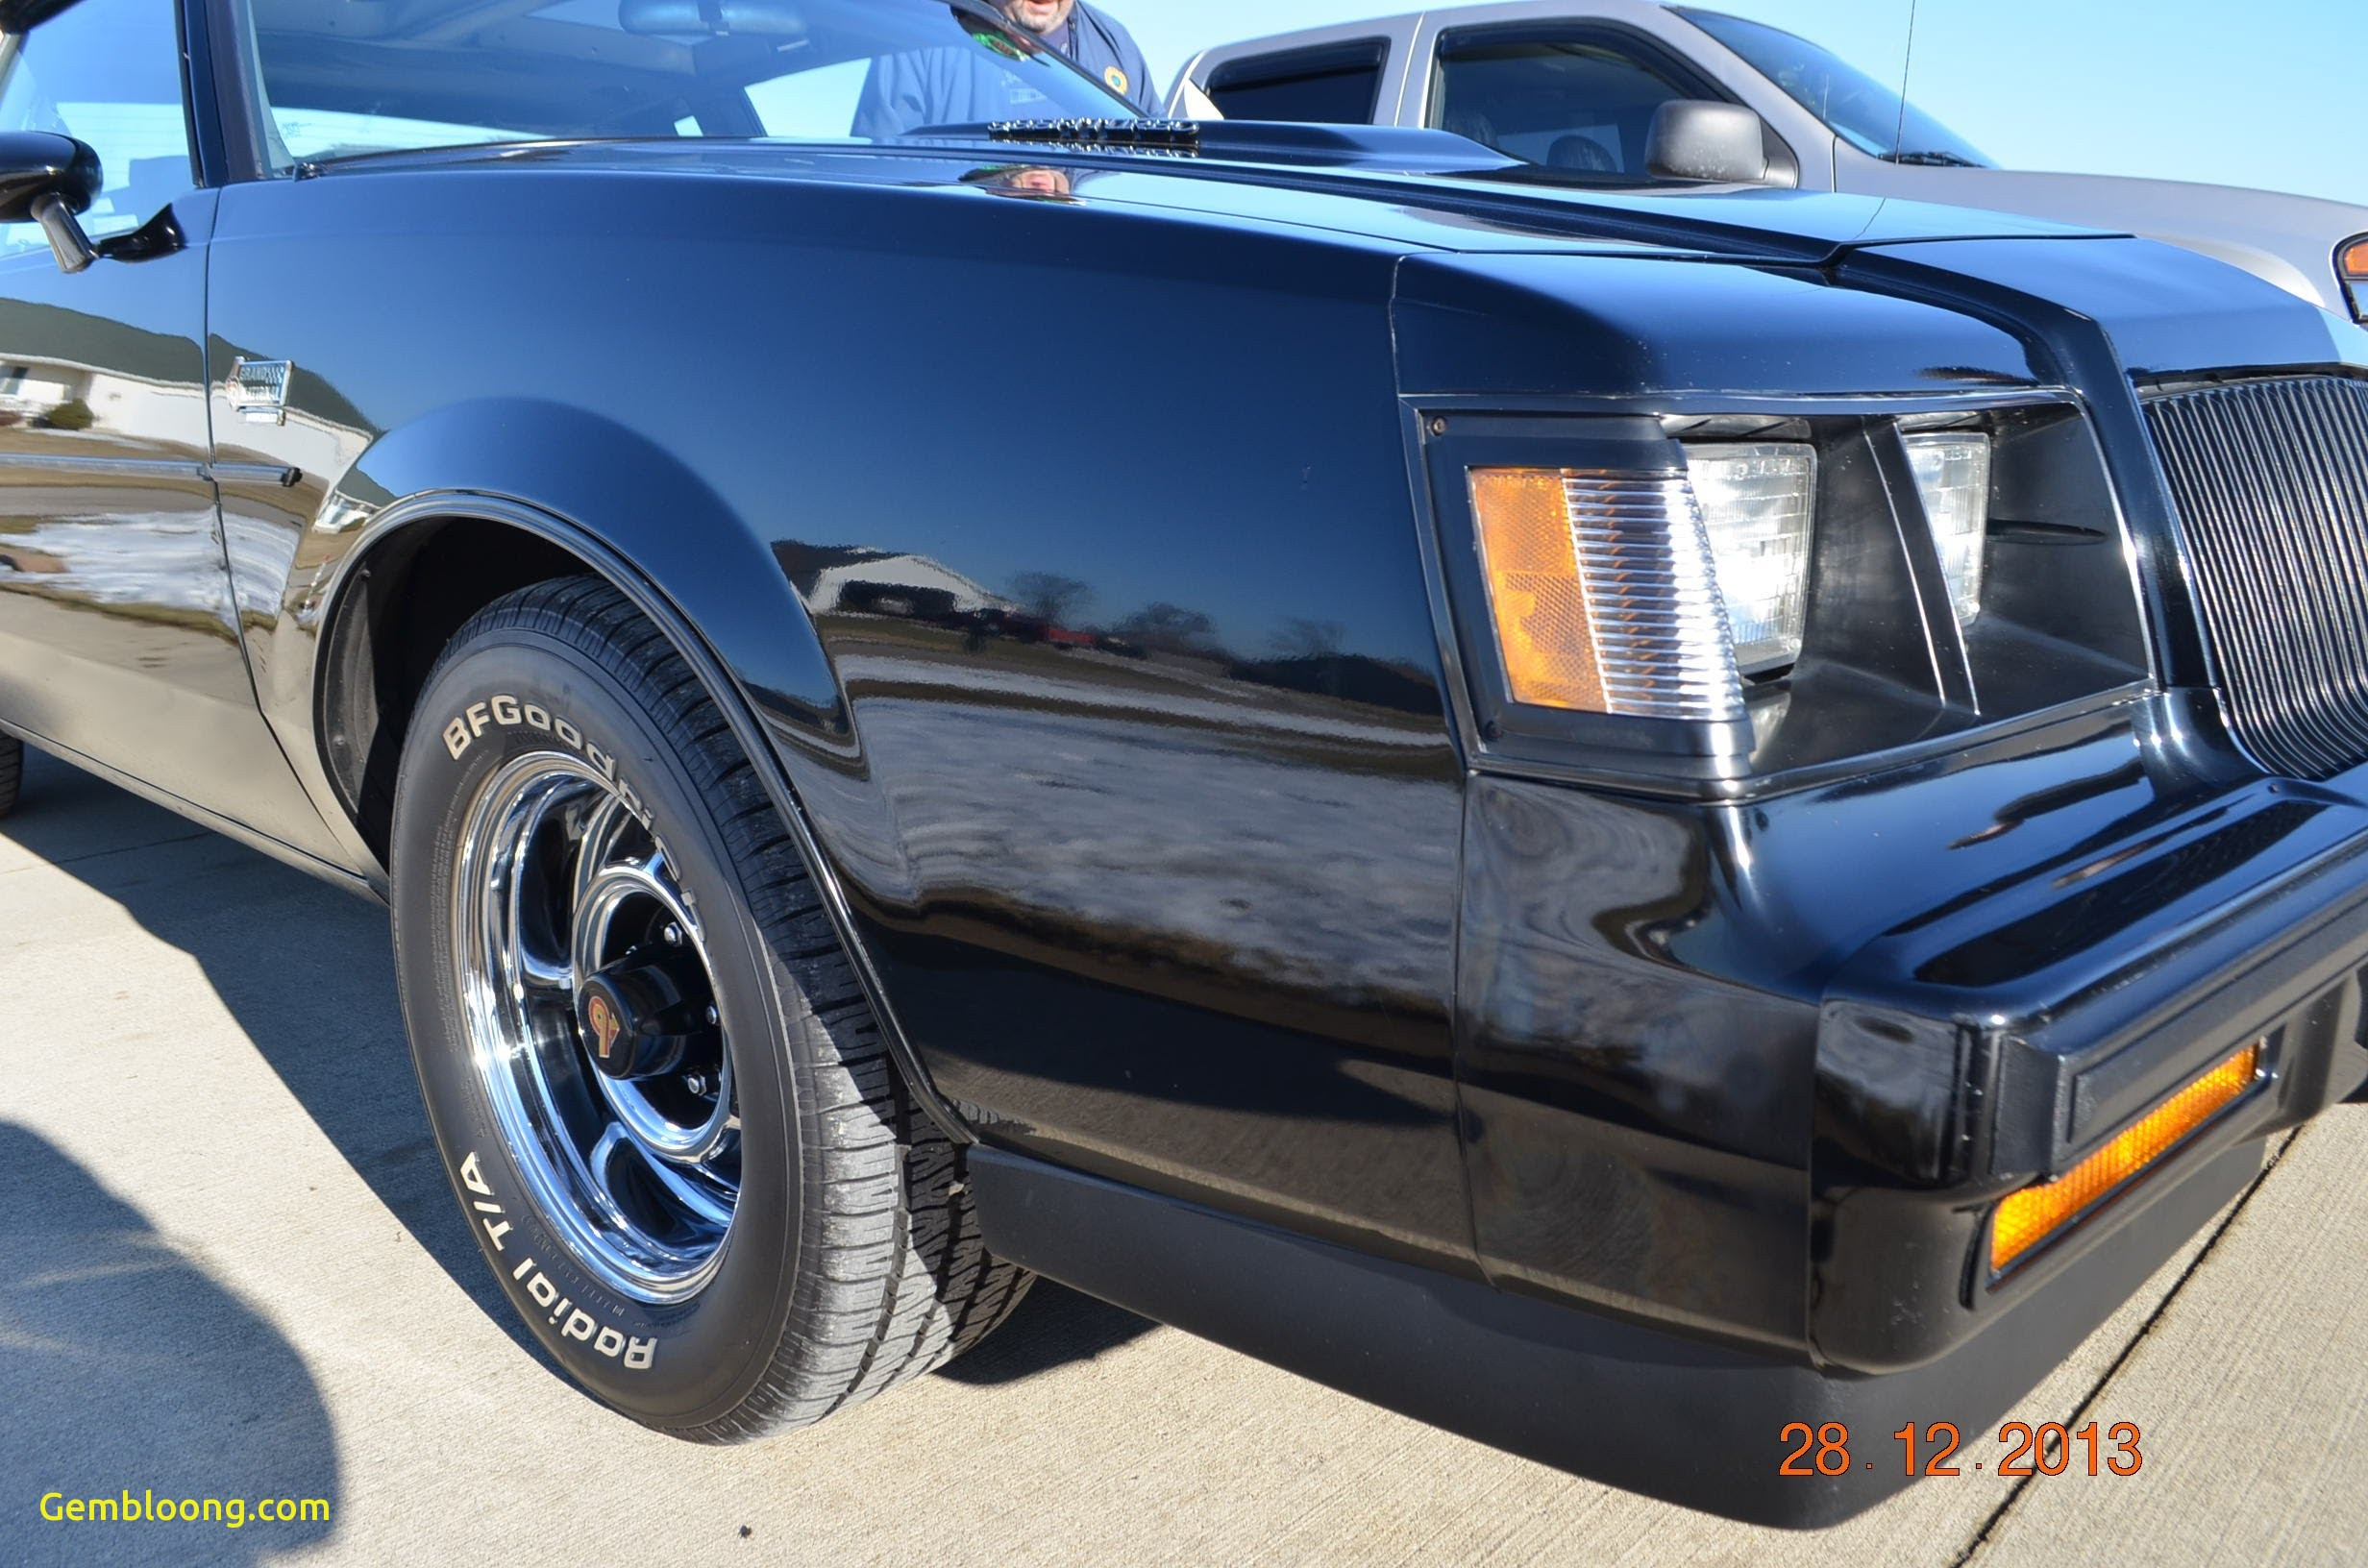 1987 buick grand national for sale one owner ann arbor michigan auto appraisal 800 301 3886